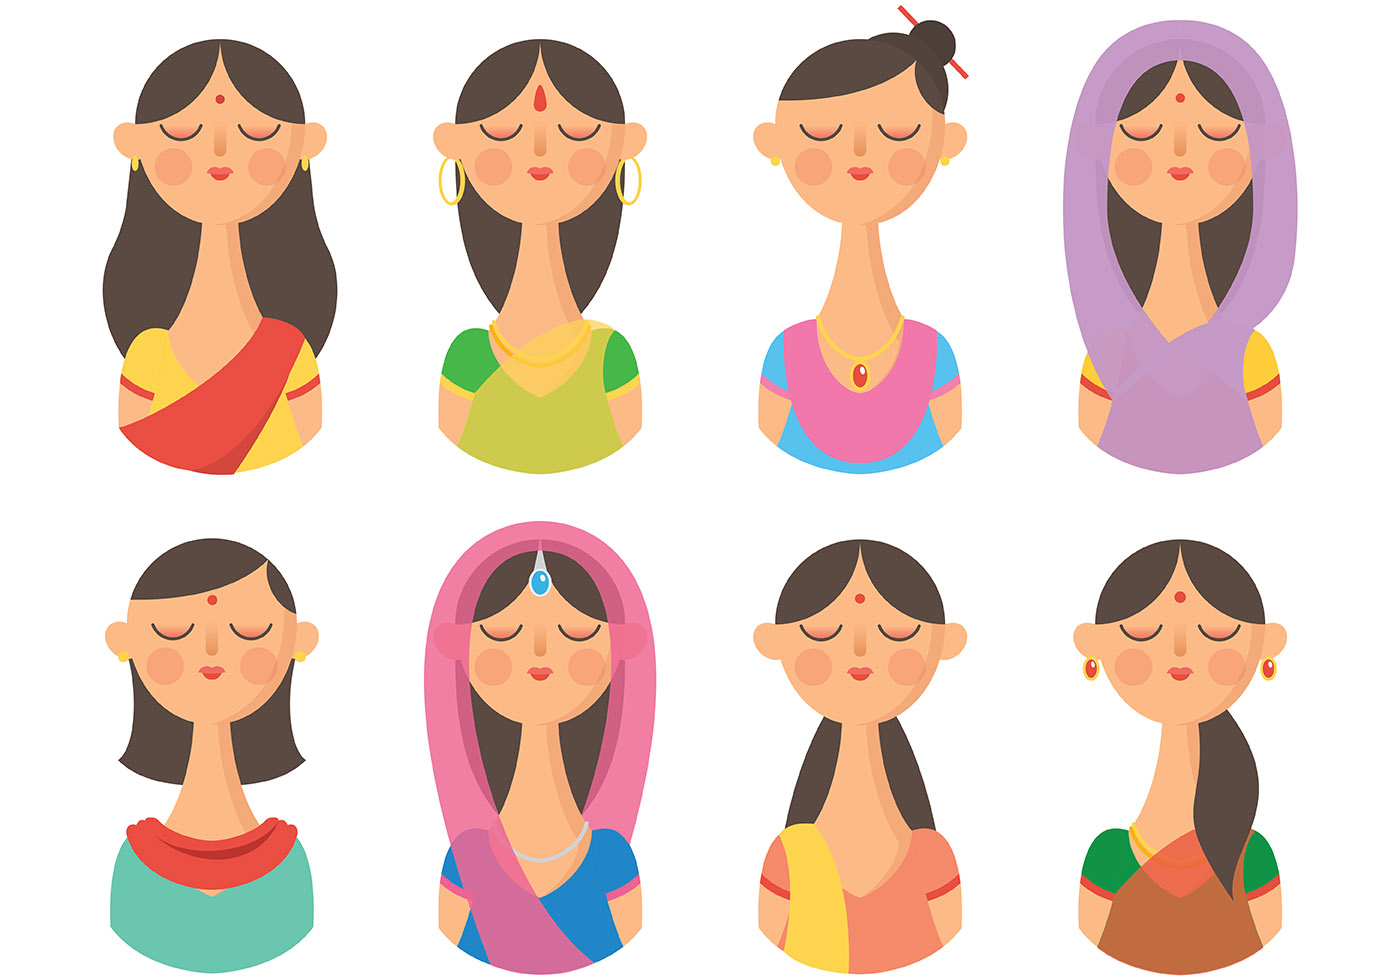 Indian Woman Free Vector Art - (3690 Free Downloads)